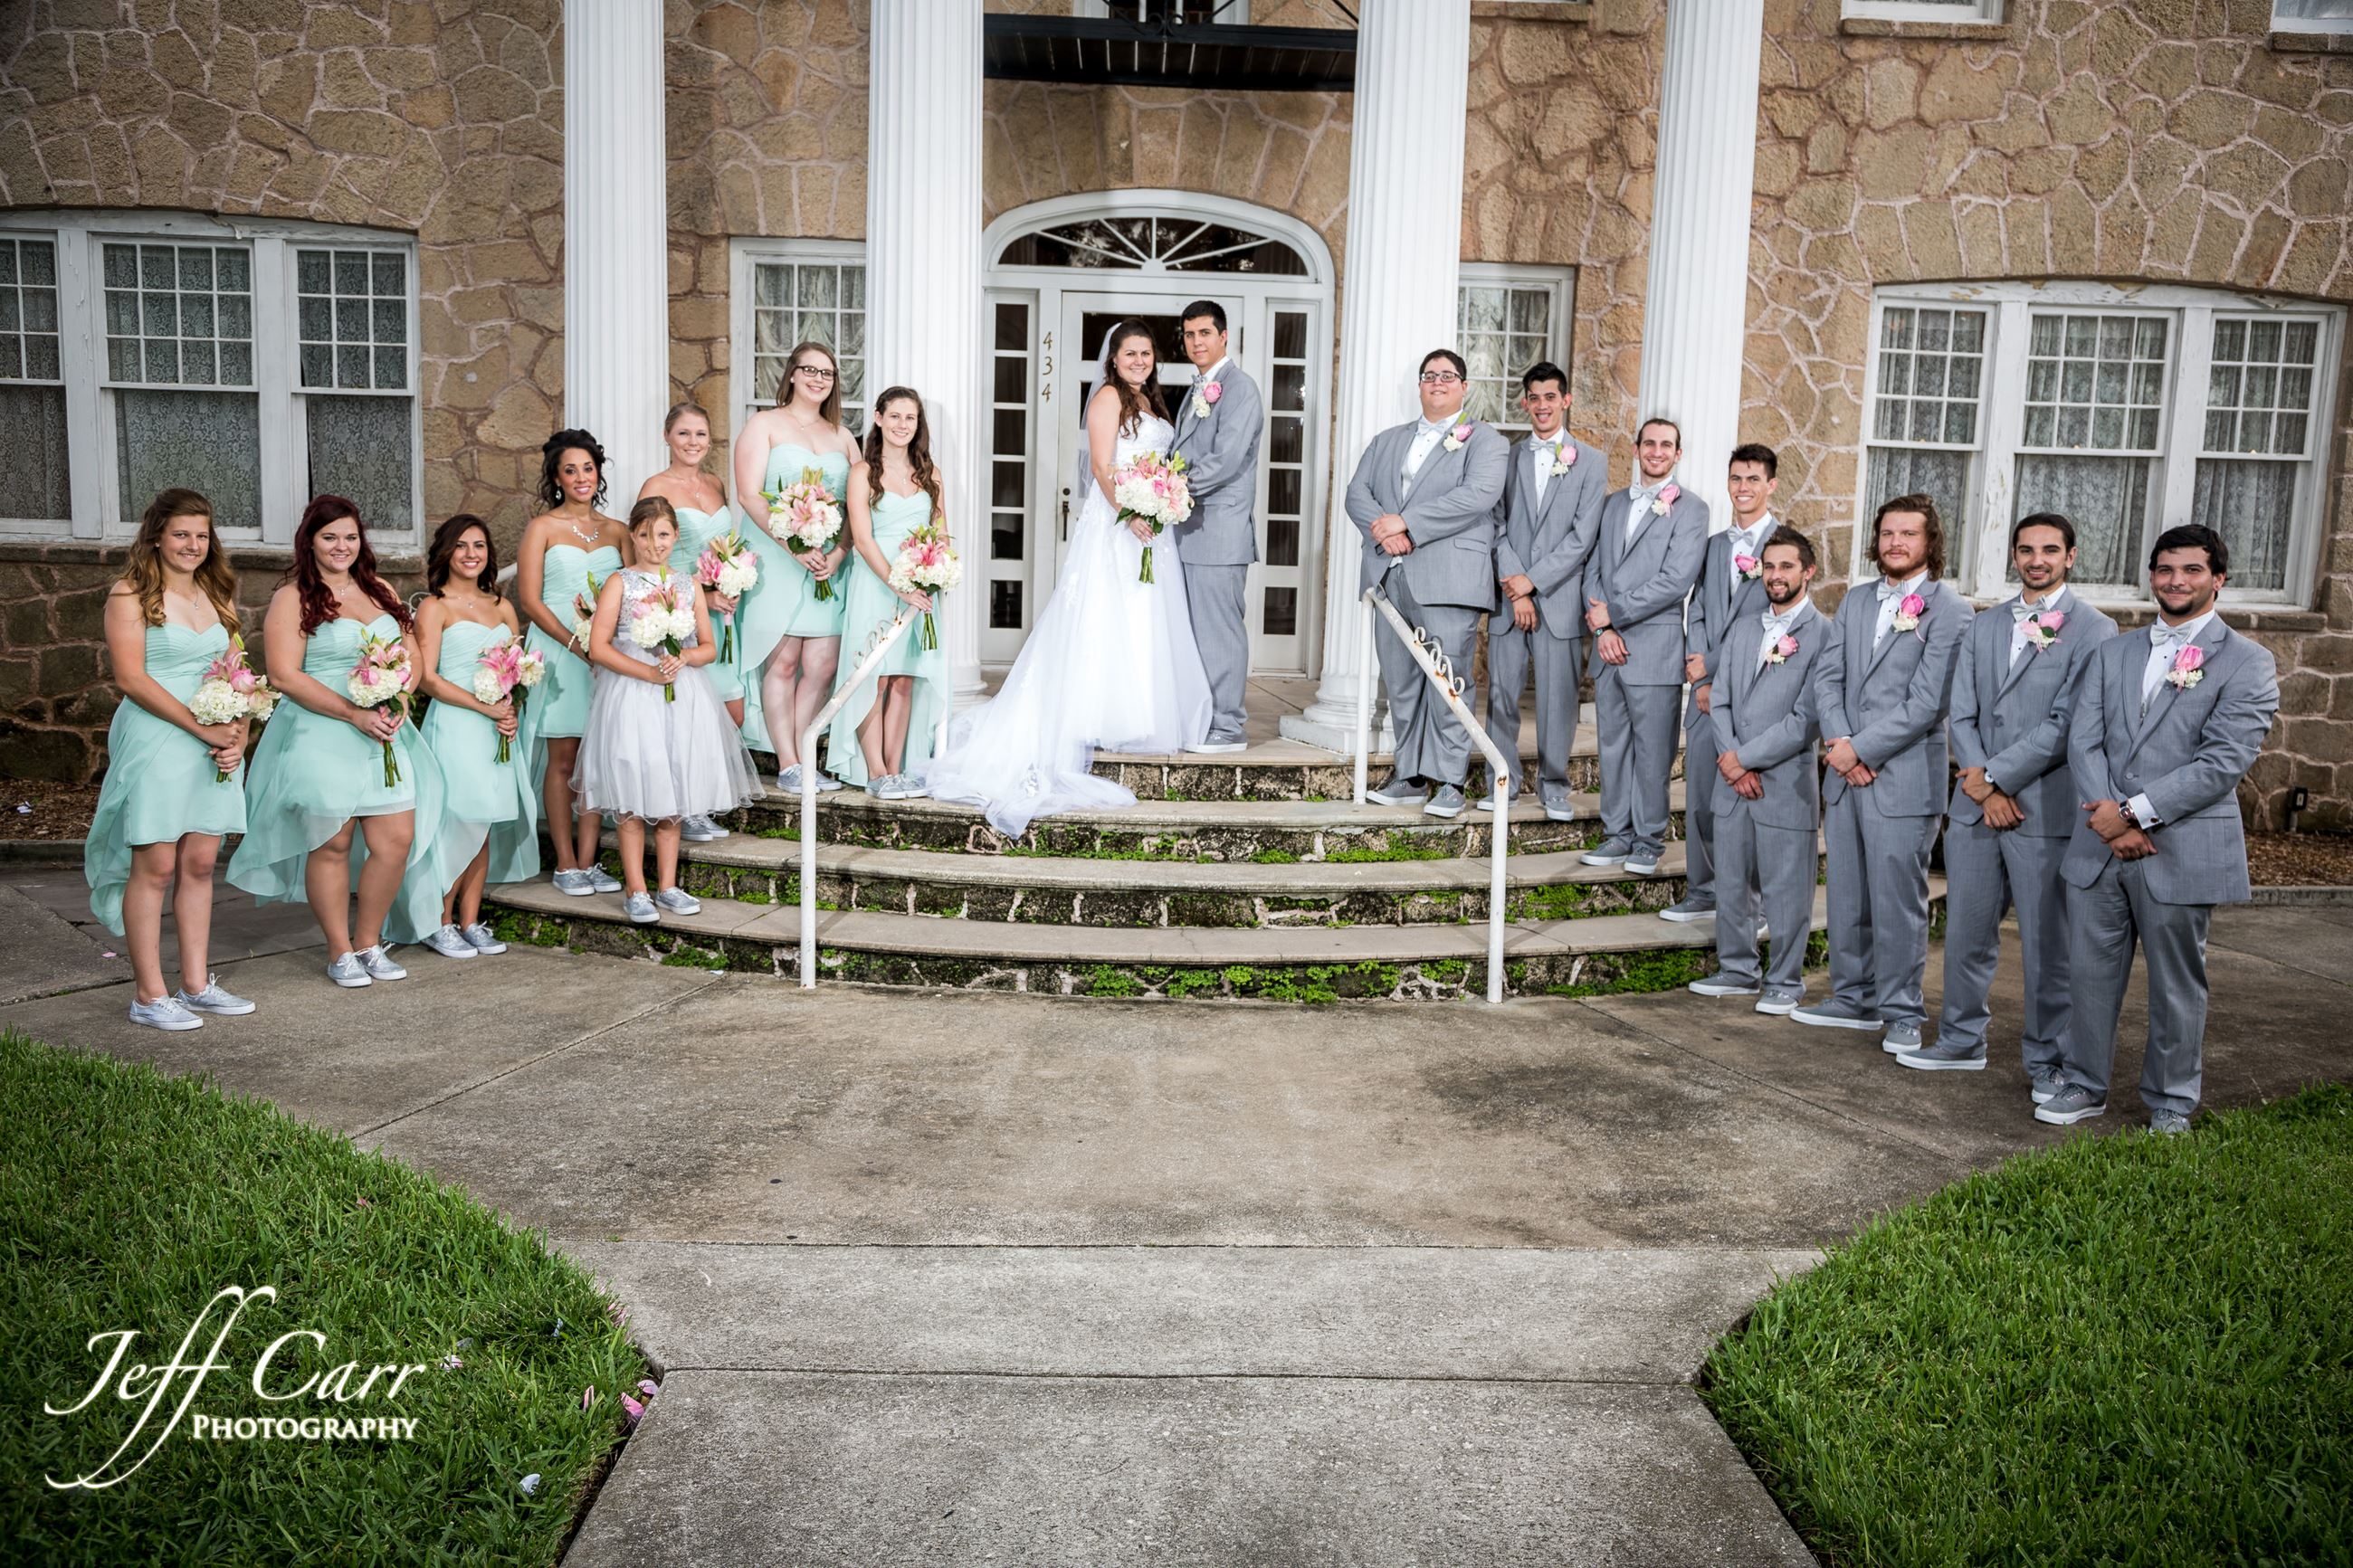 Porcher House Weddings